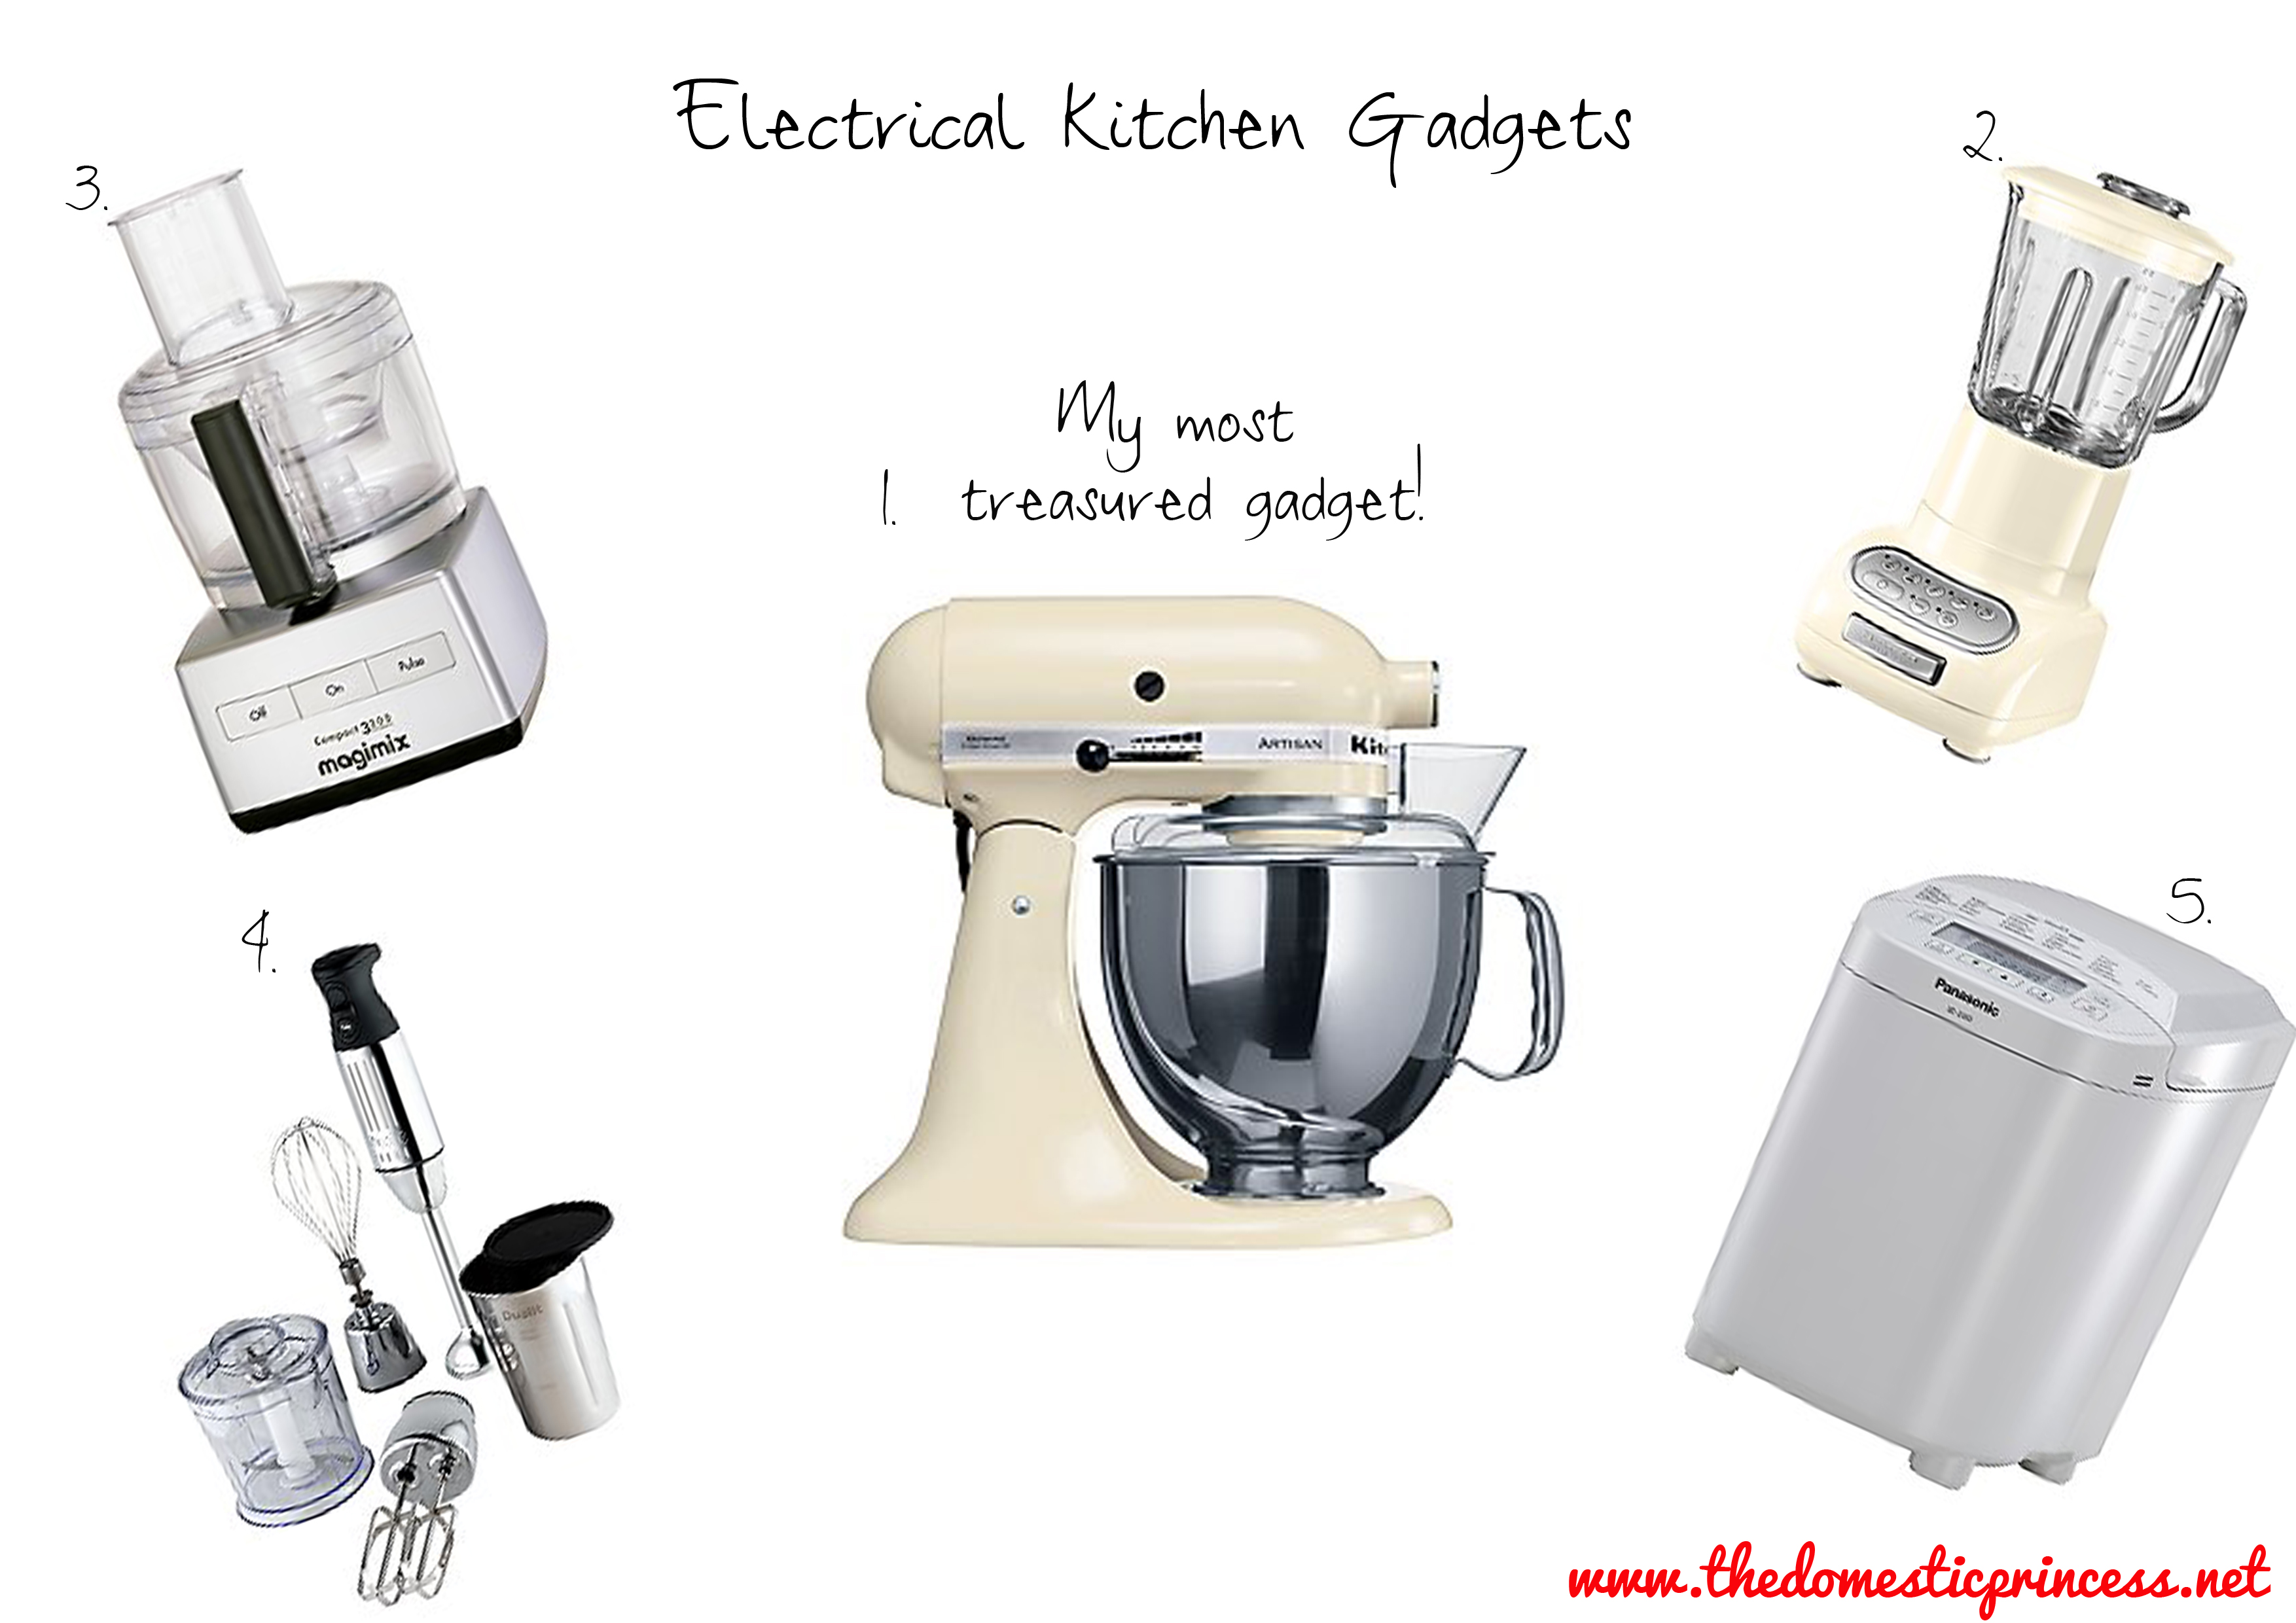 Kitchen utensils list with pictures and uses - Famous Basic Kitchen Gadgets List Basic Kitchen Gadgets List 3508 X 2480 1529 Kb Jpeg